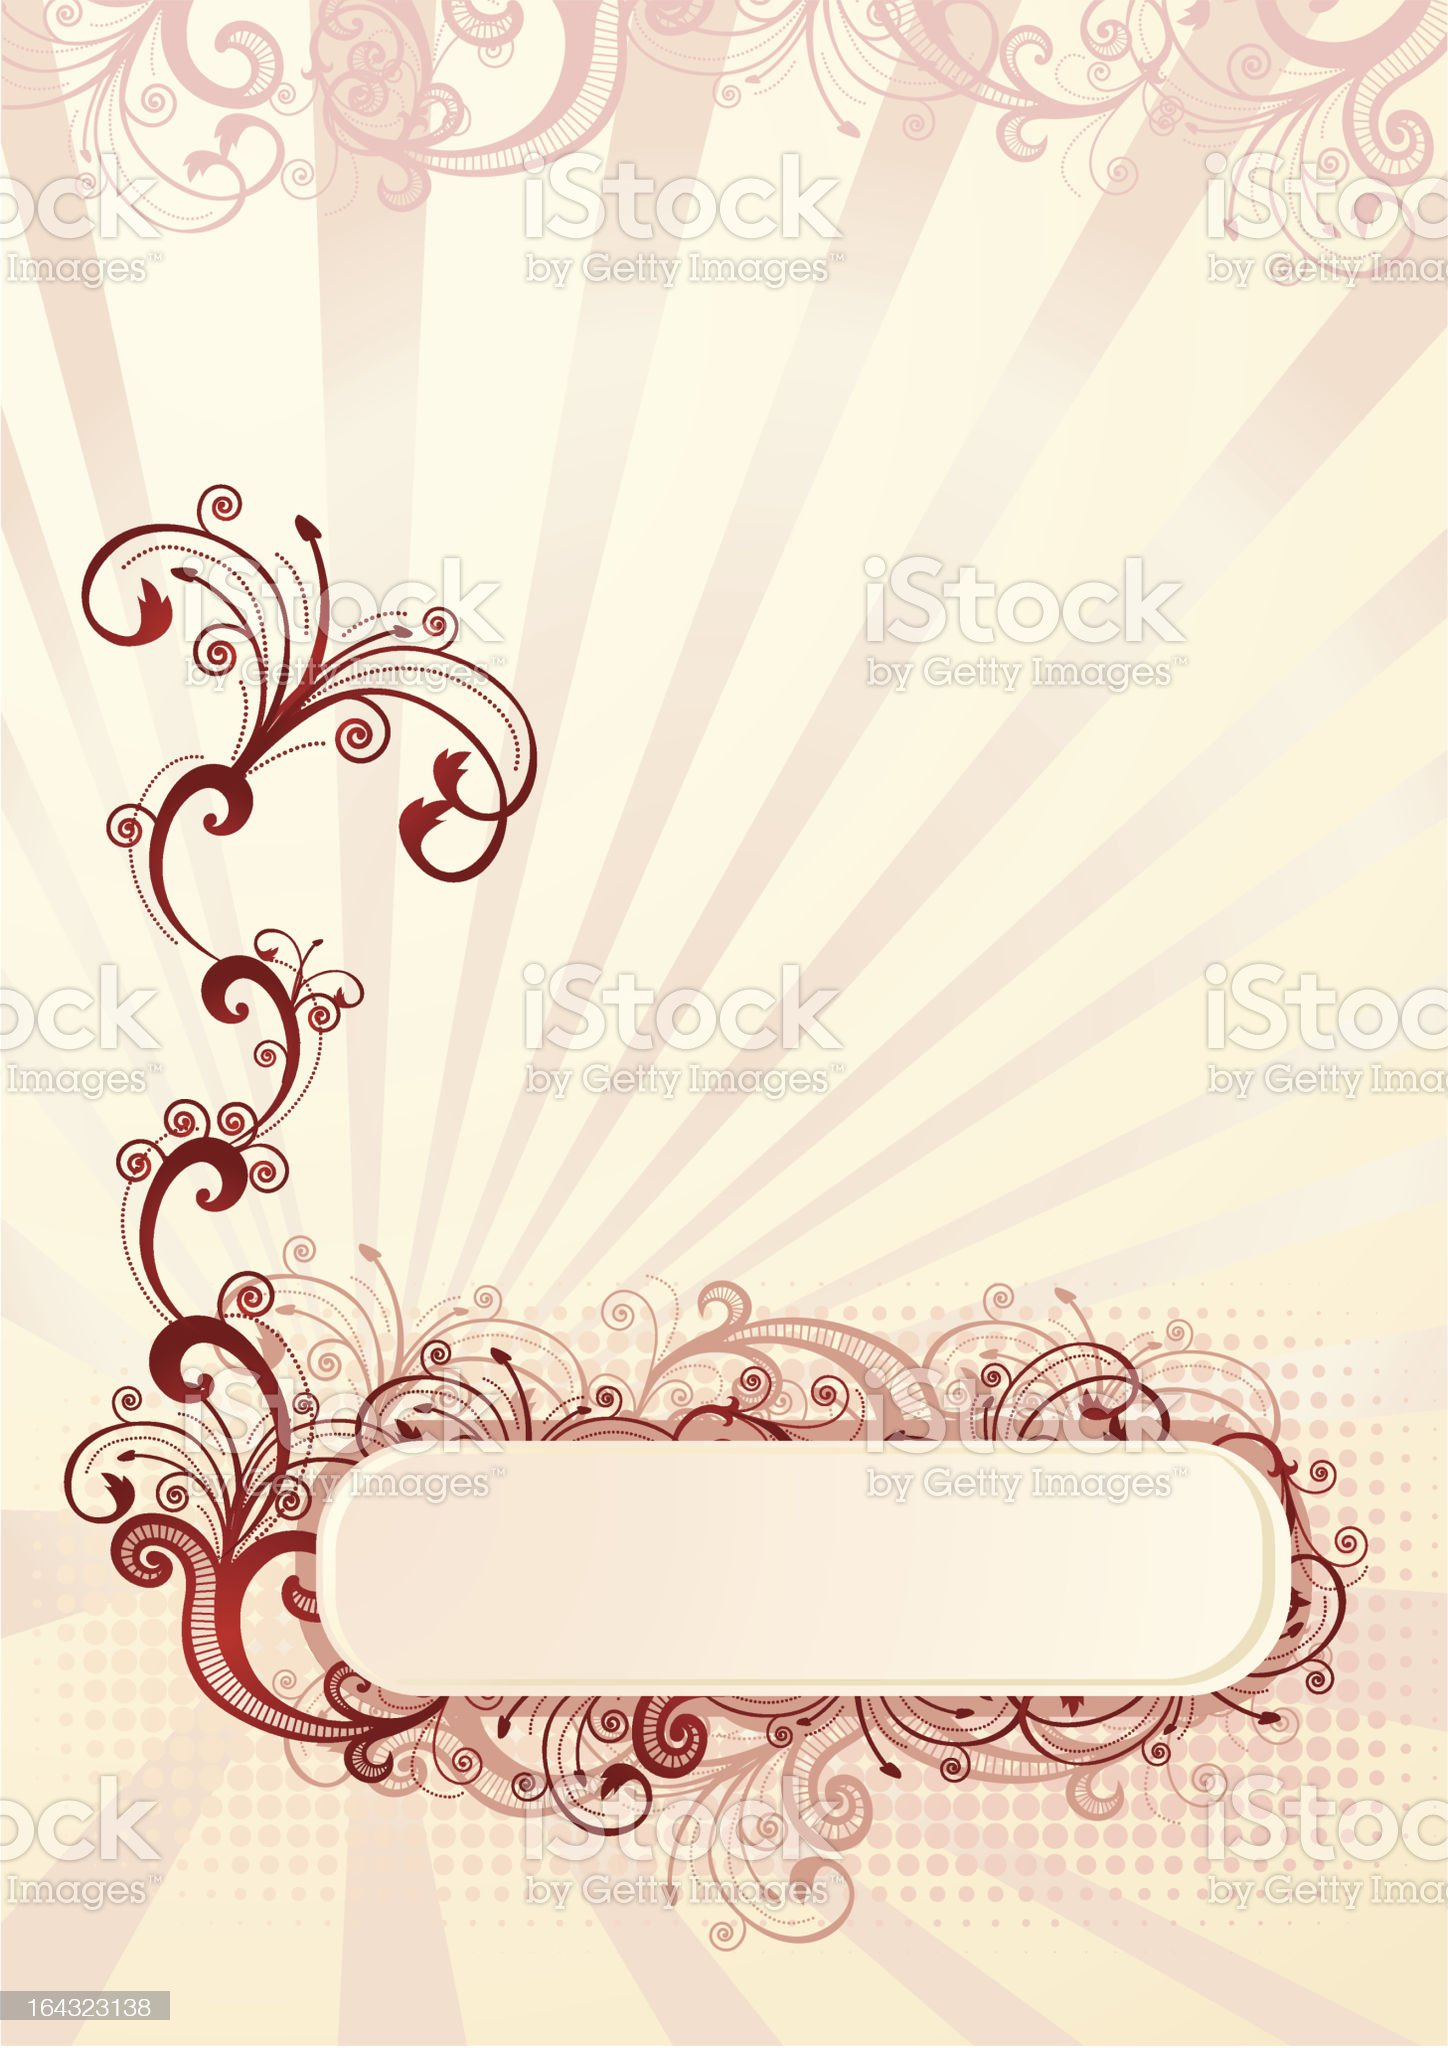 Vector illustration of an abstract floral frame royalty-free stock vector art